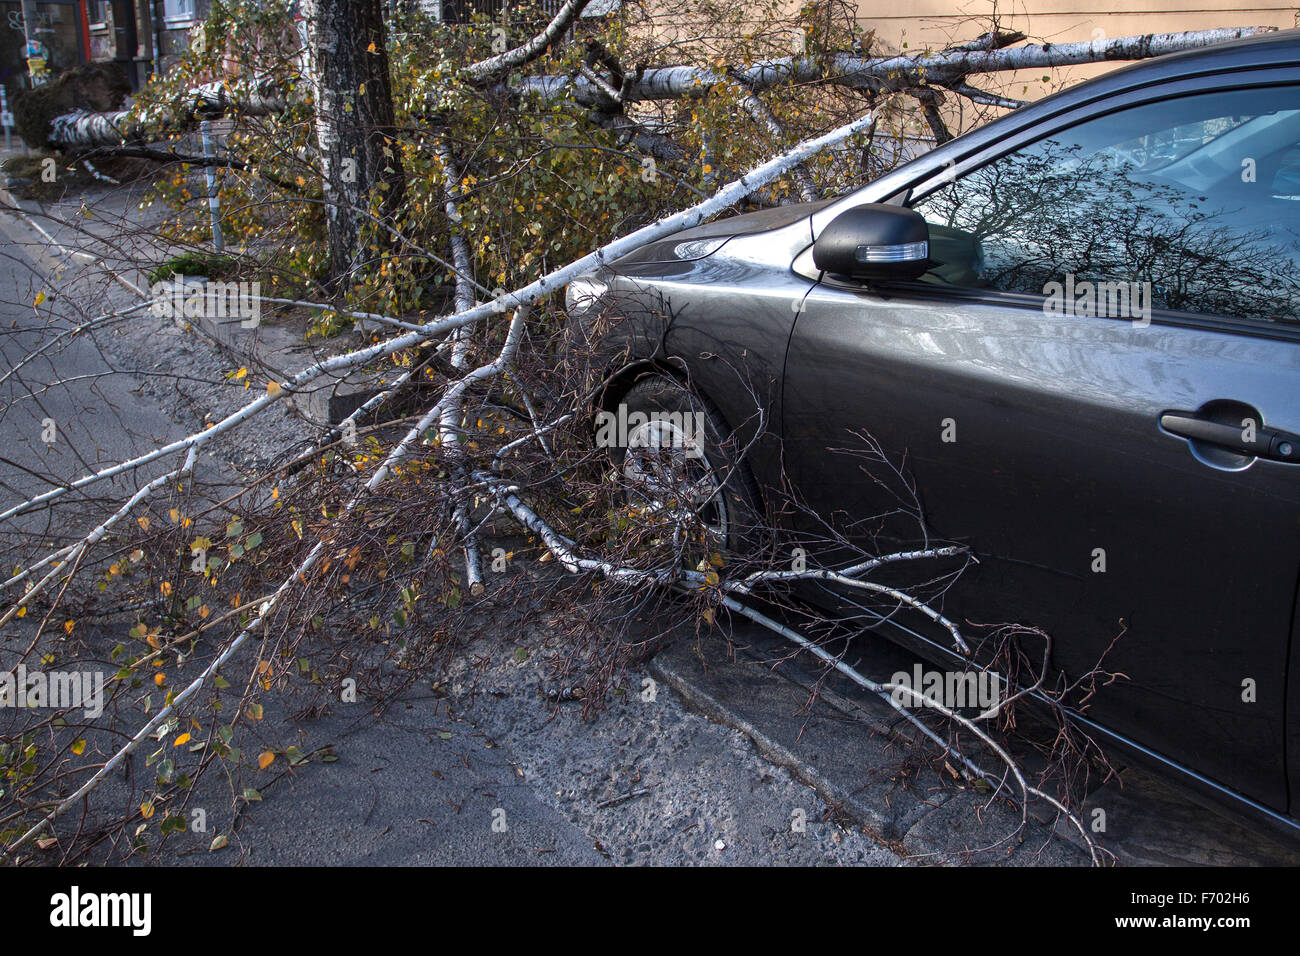 Sofia, Bulgaria - November 22, 2015: Car trapped under fallen tree after wind storm on November 22, 2015 in Sofia, - Stock Image